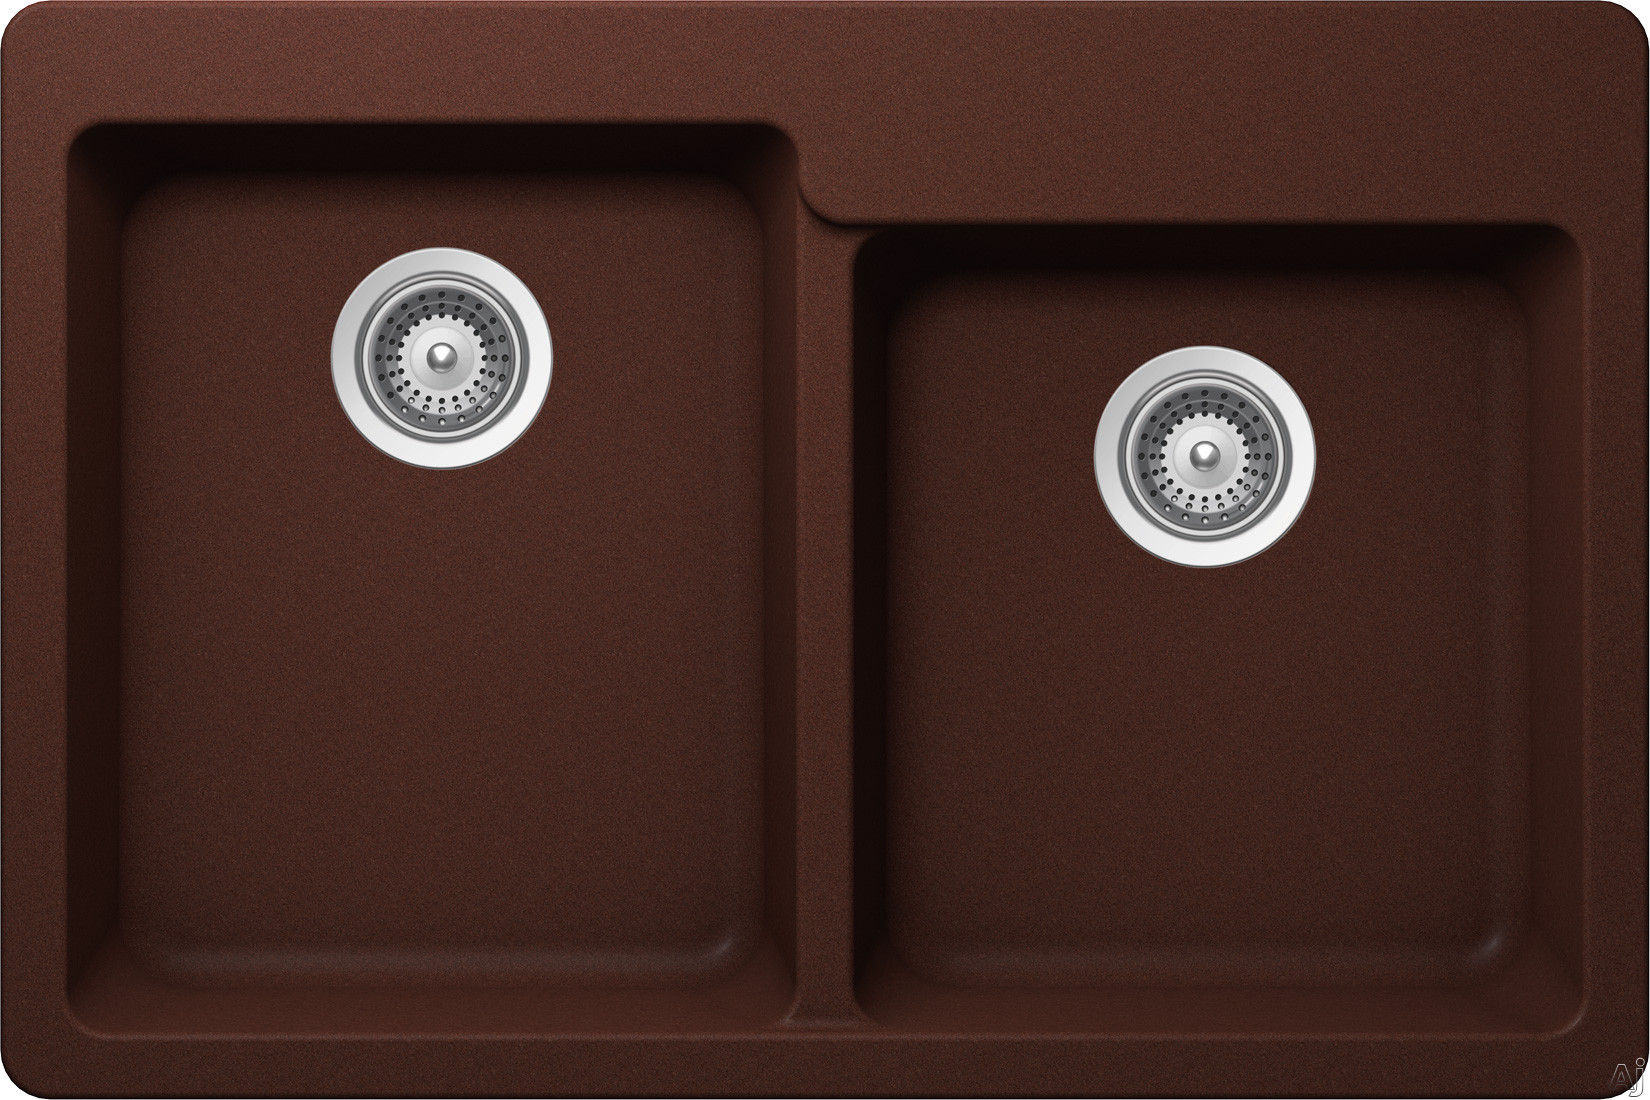 SCHOCK Alive Series ALIN175T009 33 Inch Drop in Kitchen Sink with 9 3 8 Inch Bowl Depth Two Bowls Granite Construction Rear Set Drains ProHygenic21 Surface and 4 Pre Scored Faucet Holes Cristalite Copper